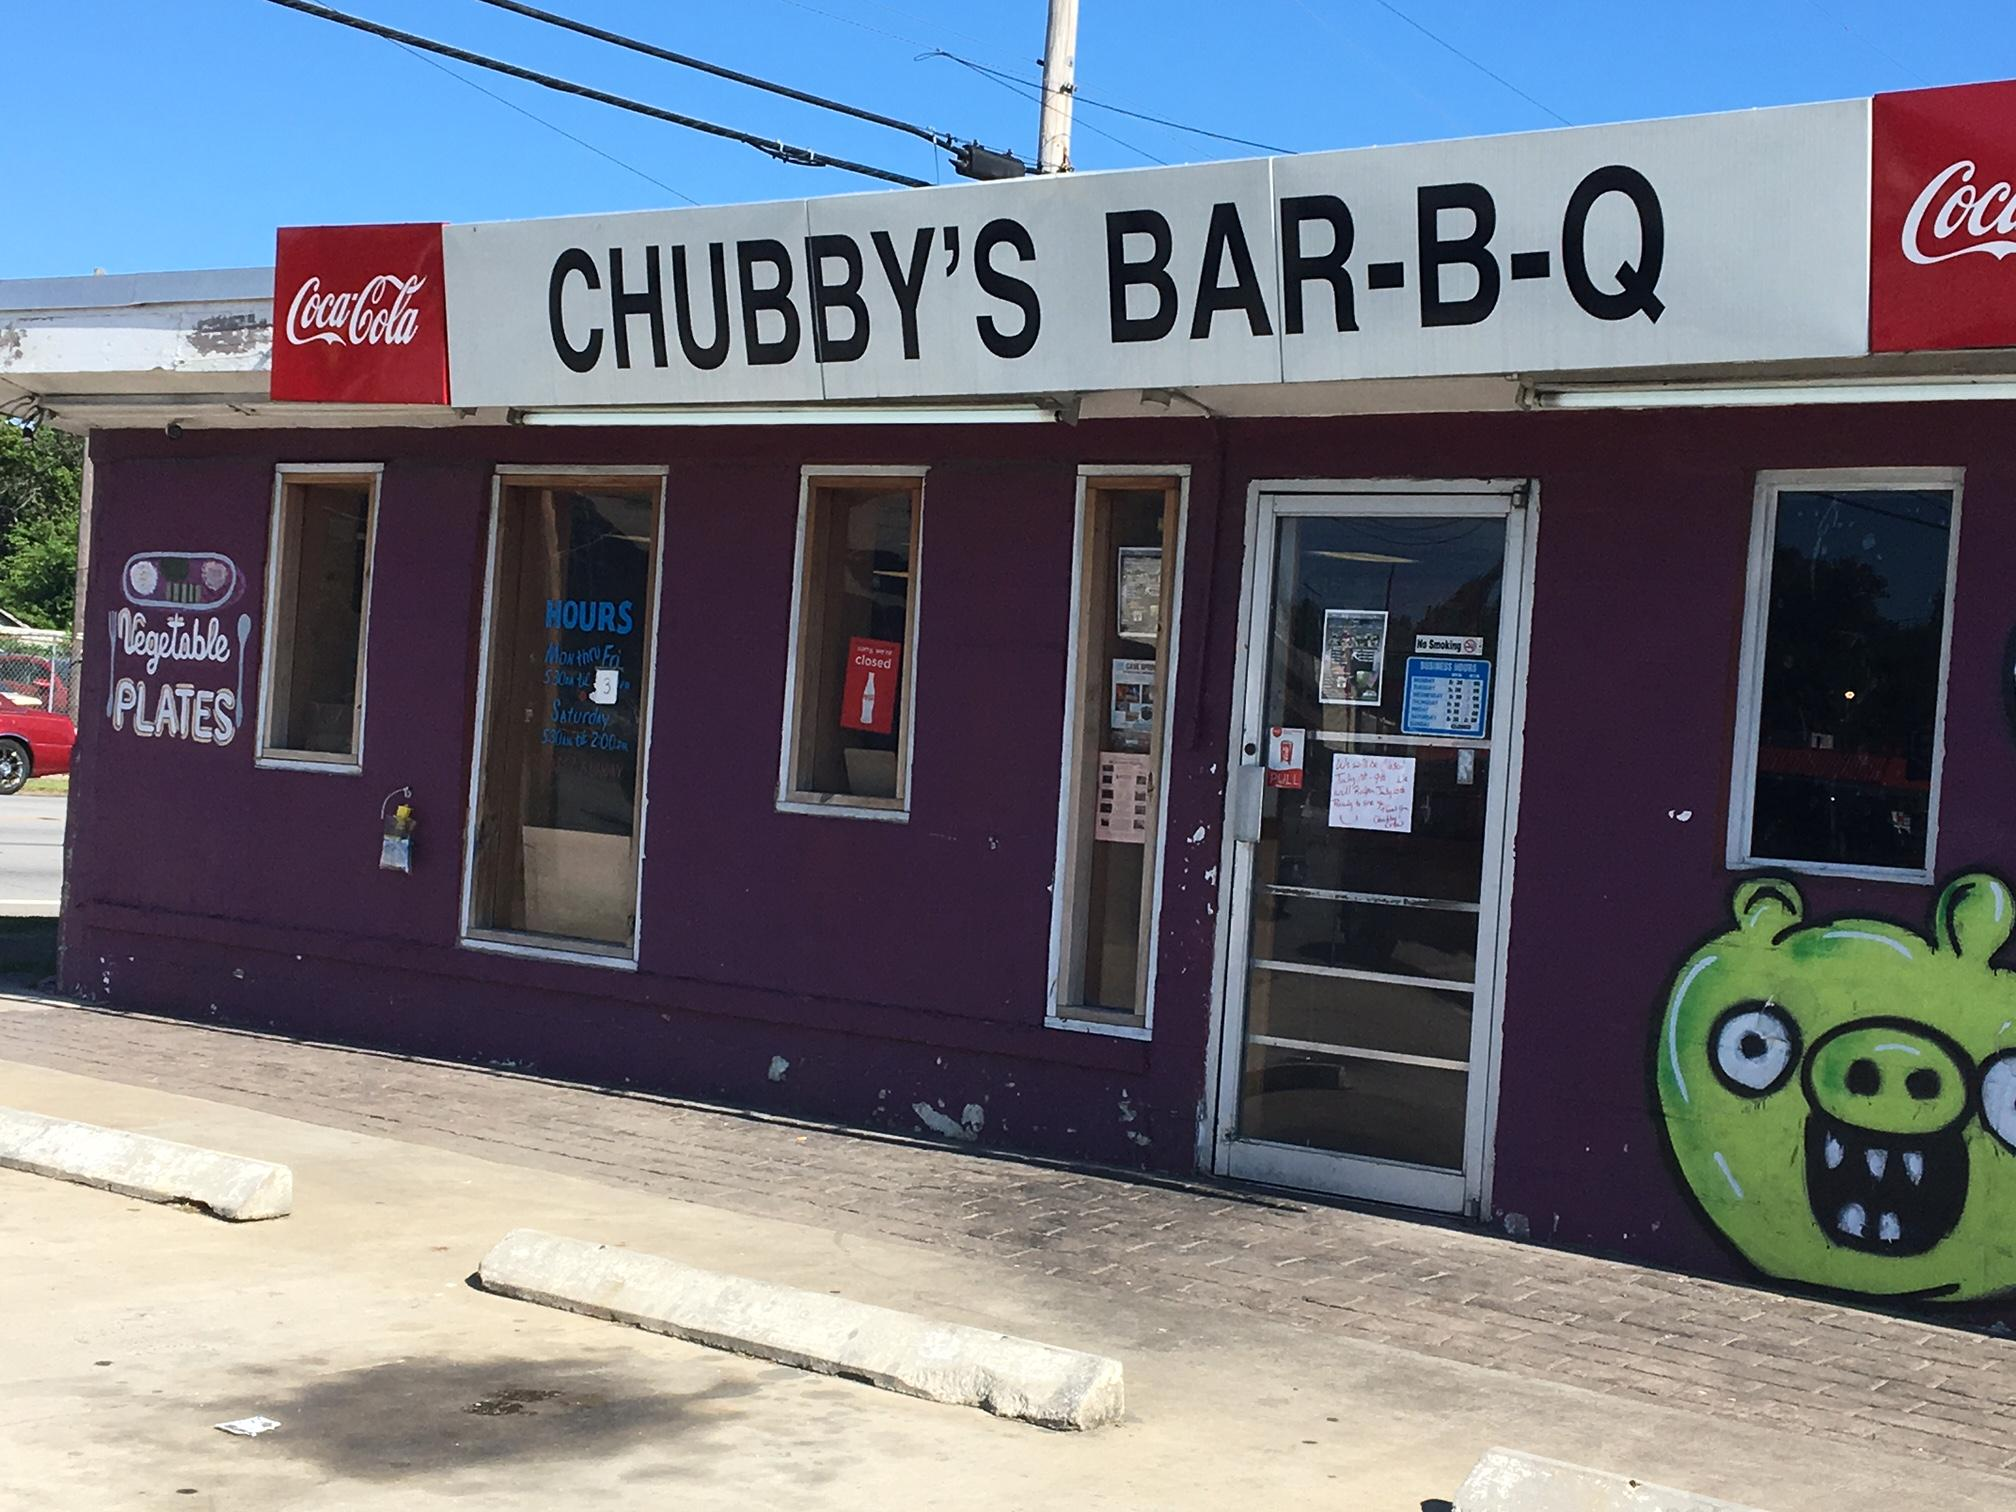 On Tuesdays, the owner of Chubby's Bar-B-Q cooks up more than 100 meals for the homeless in Chattanooga. (Image: WTVC)